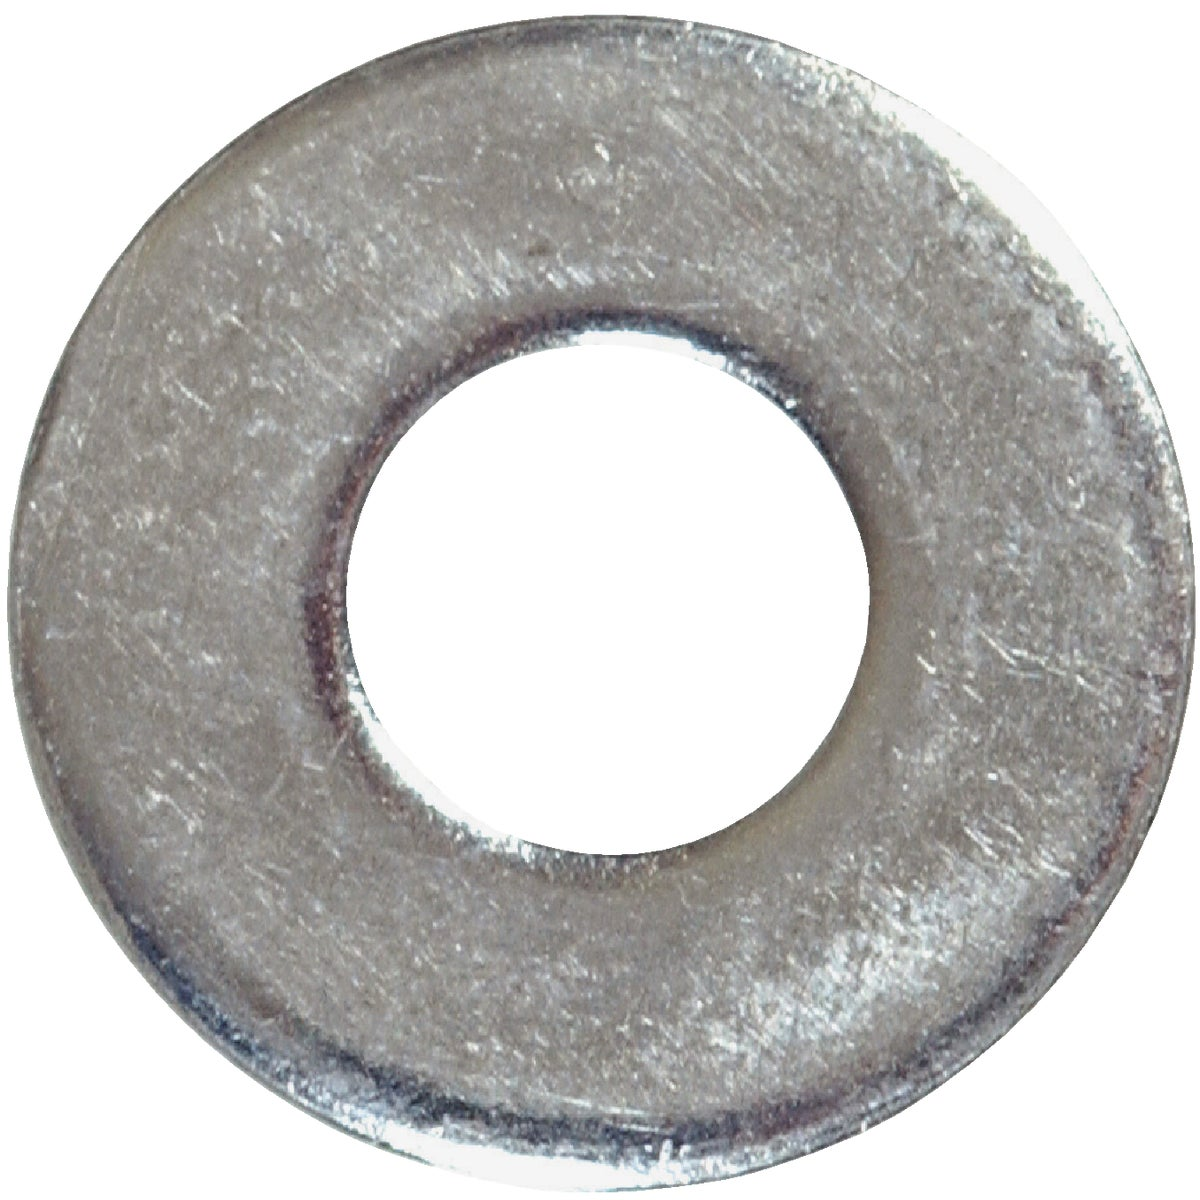 "25LB 3/8"" USS FLT WASHER - 660053 by Hillman Fastener"